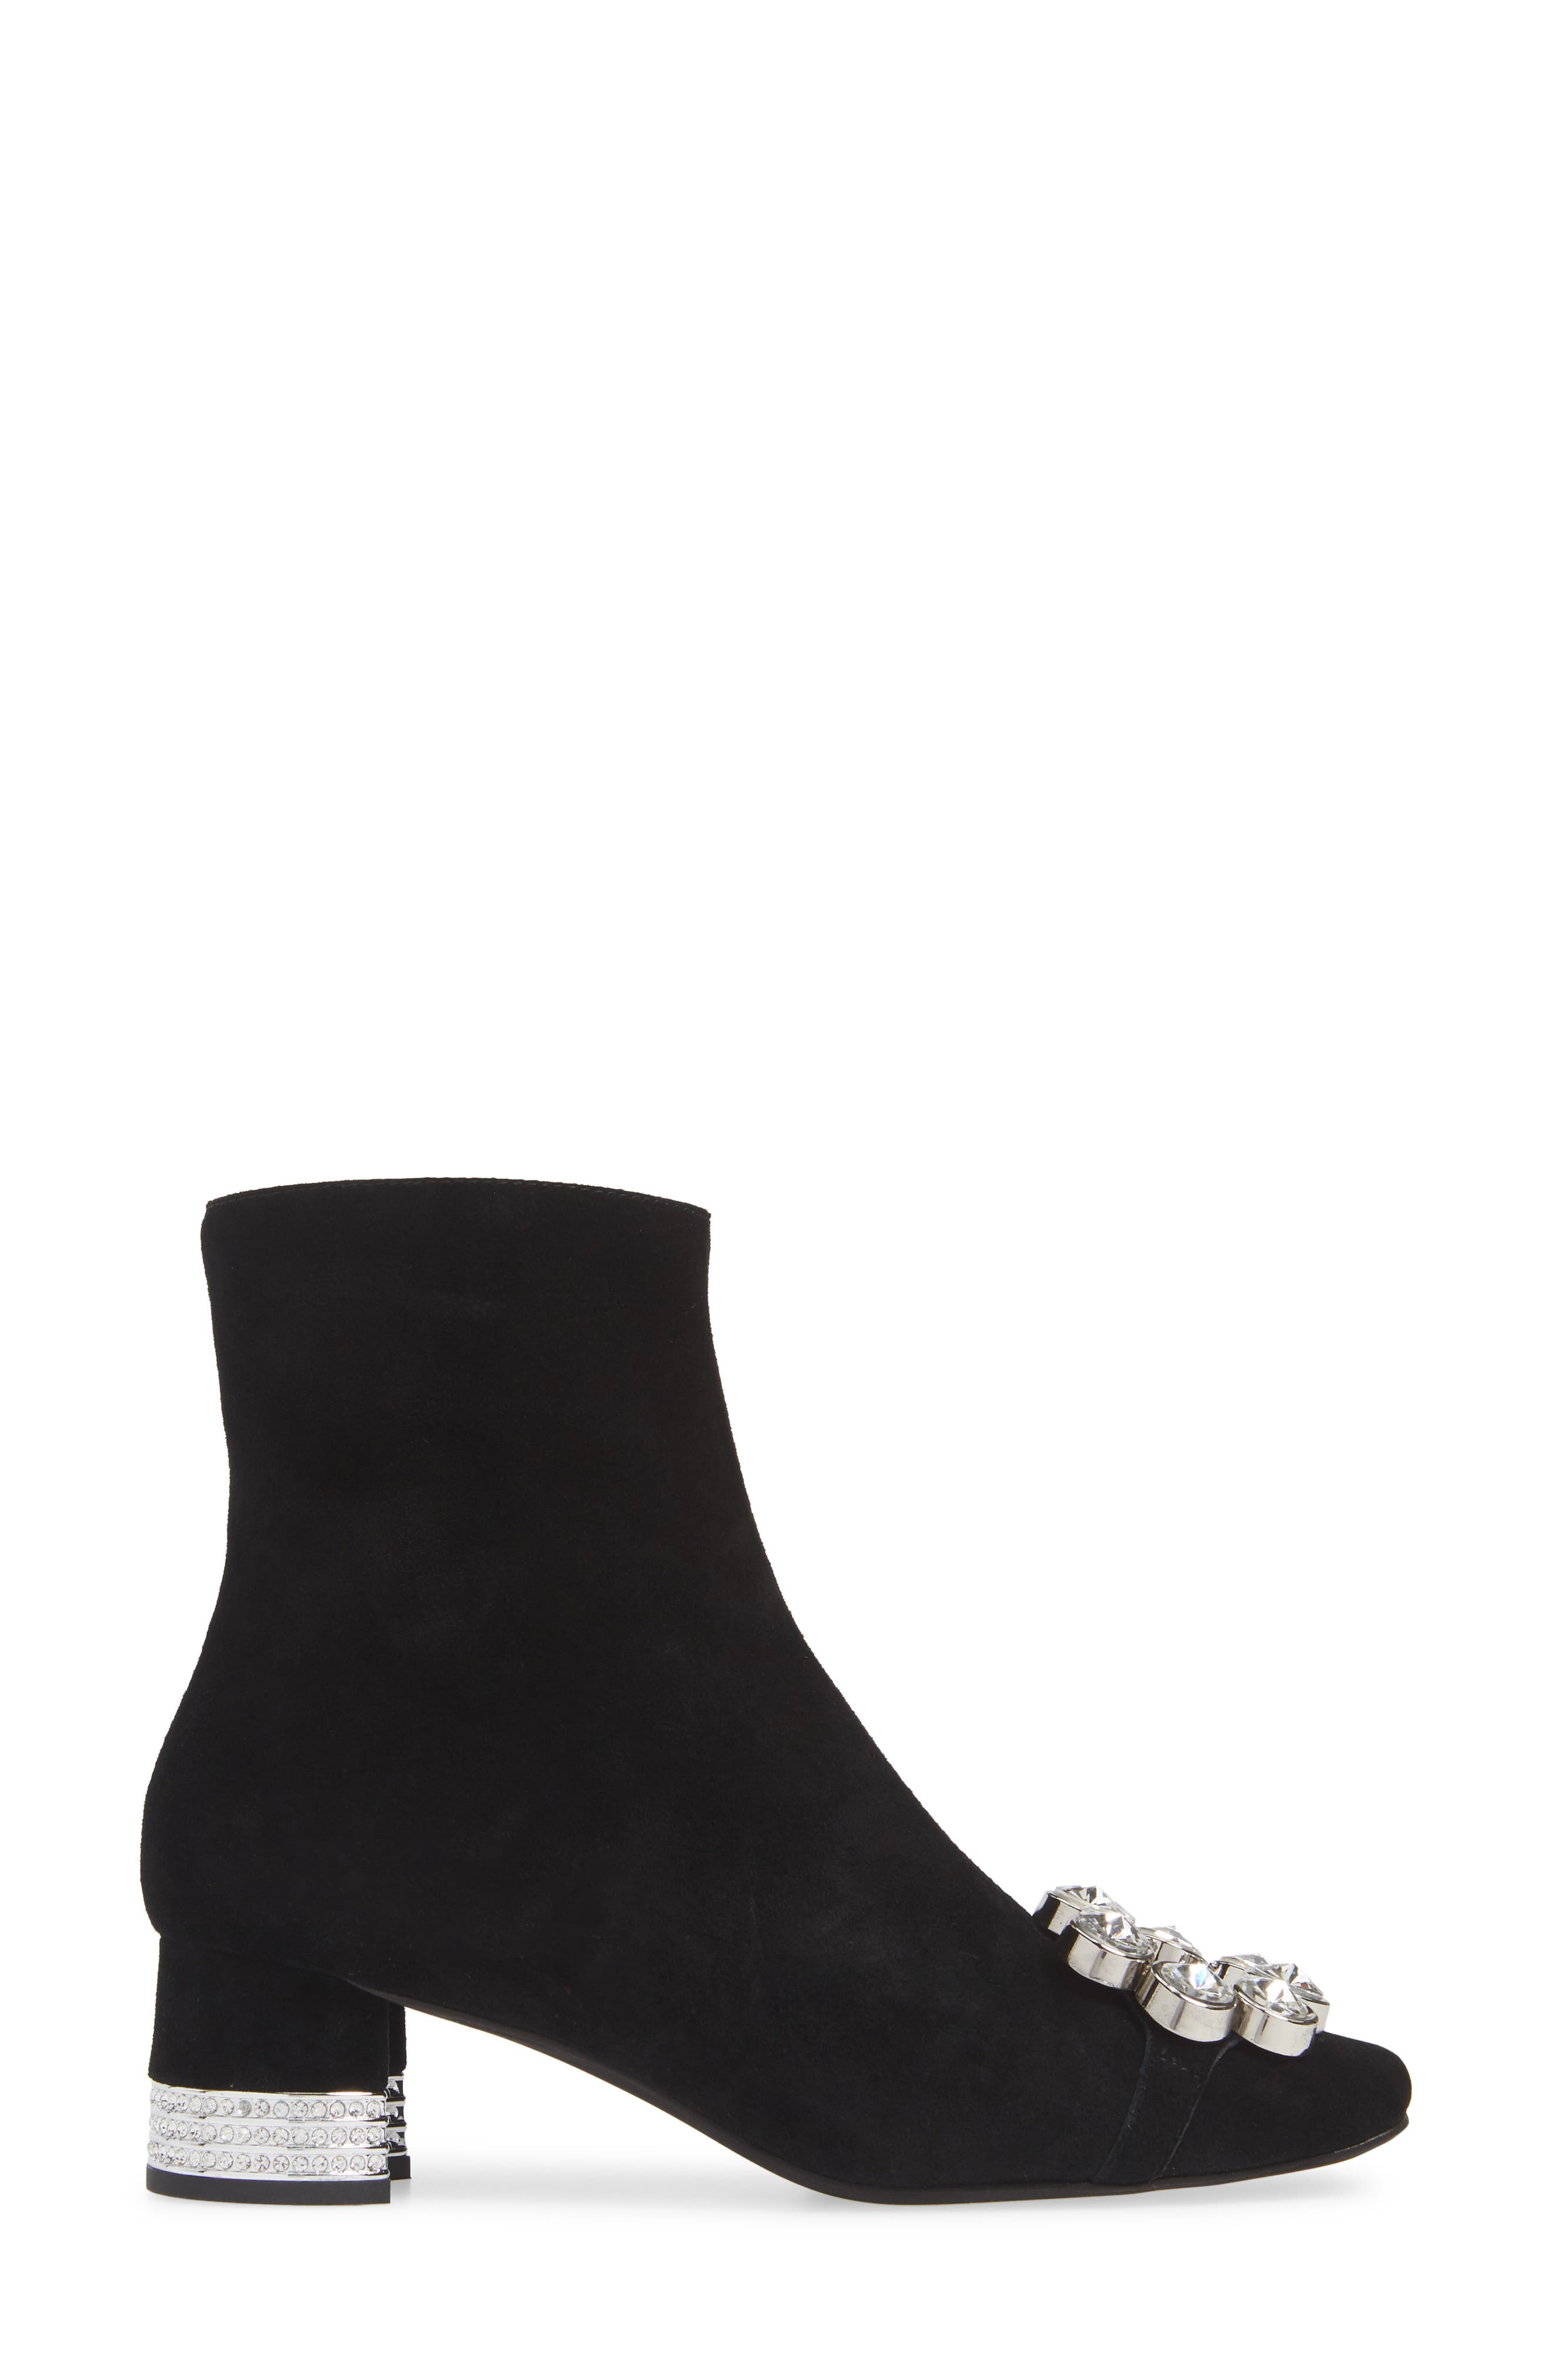 Sumatra Embellished Bootie,                             Alternate thumbnail 3, color,                             BLACK SUEDE